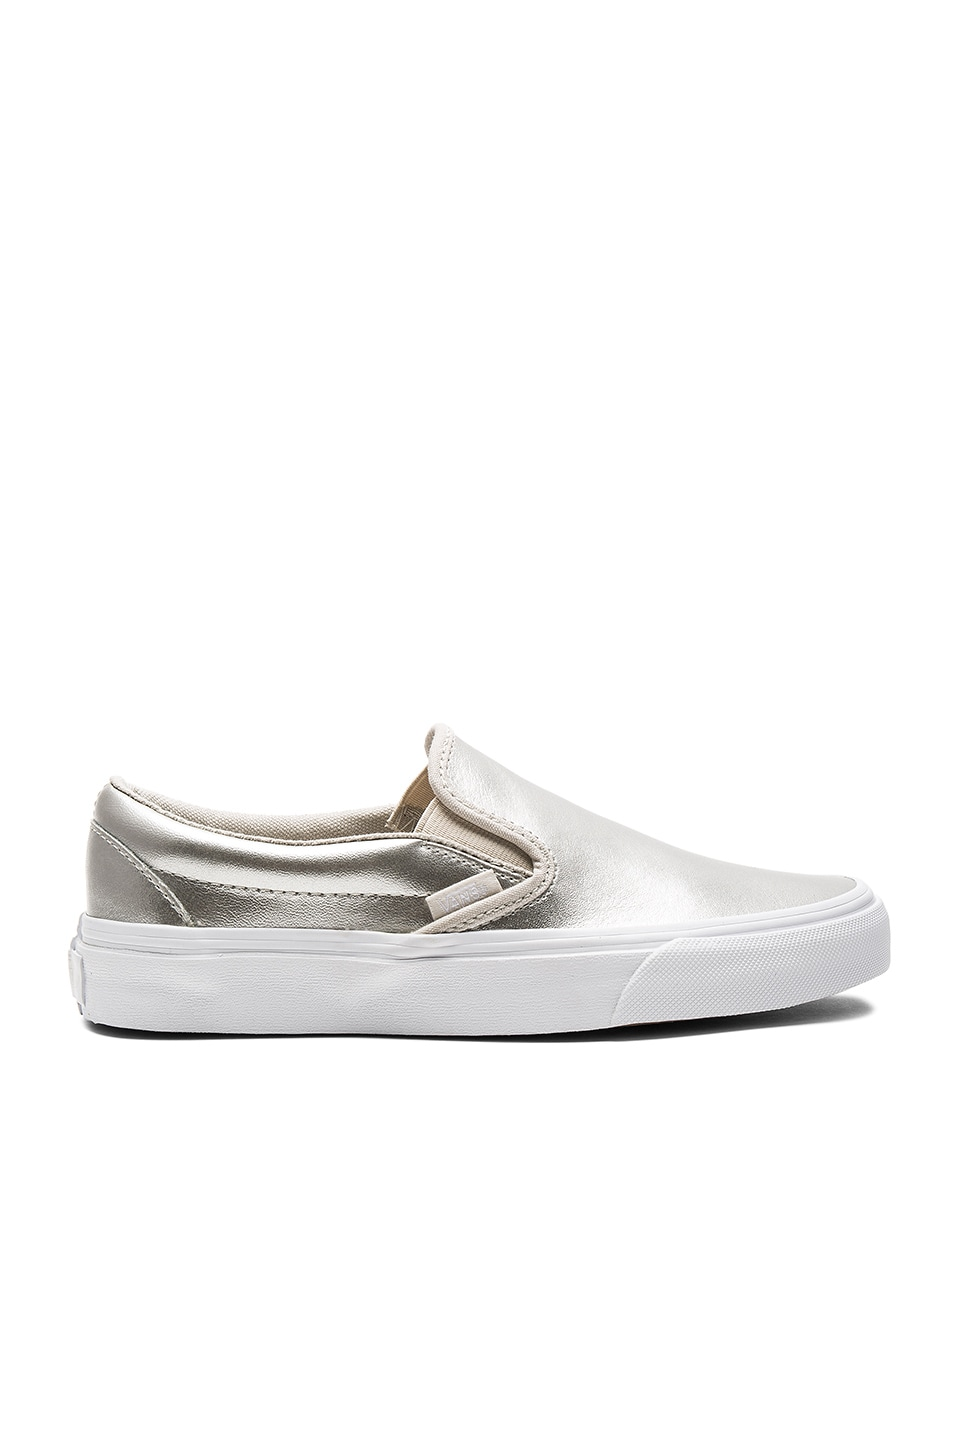 Vans Classic Slip-On Sneaker in Silver & True White